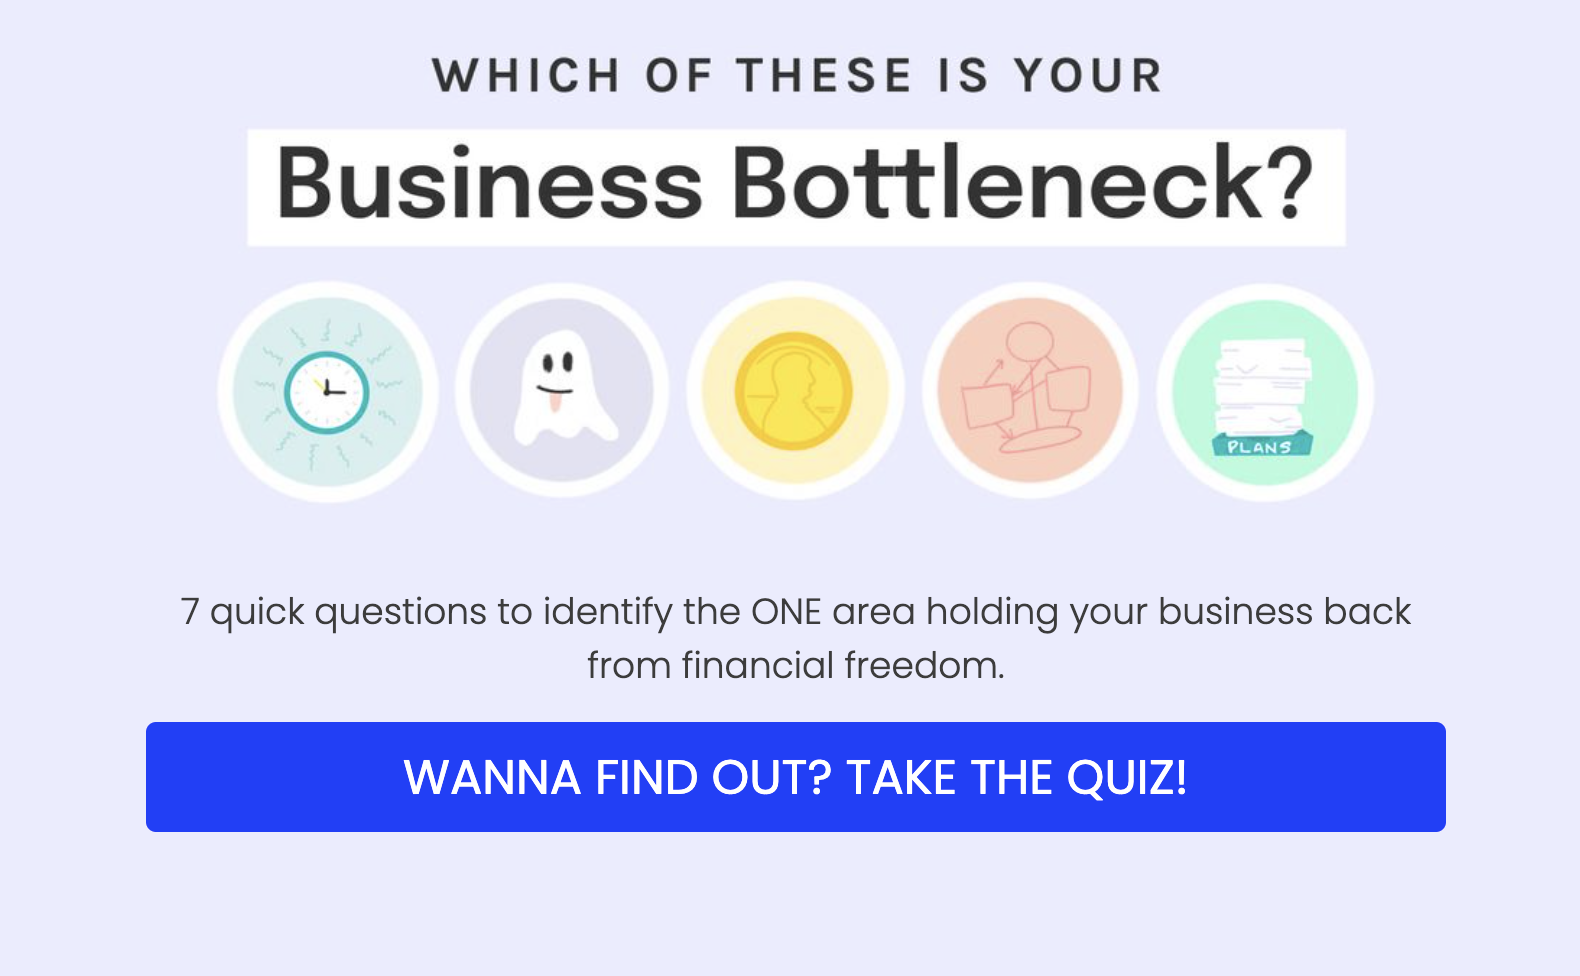 Which of these is your business bottleneck quiz cover